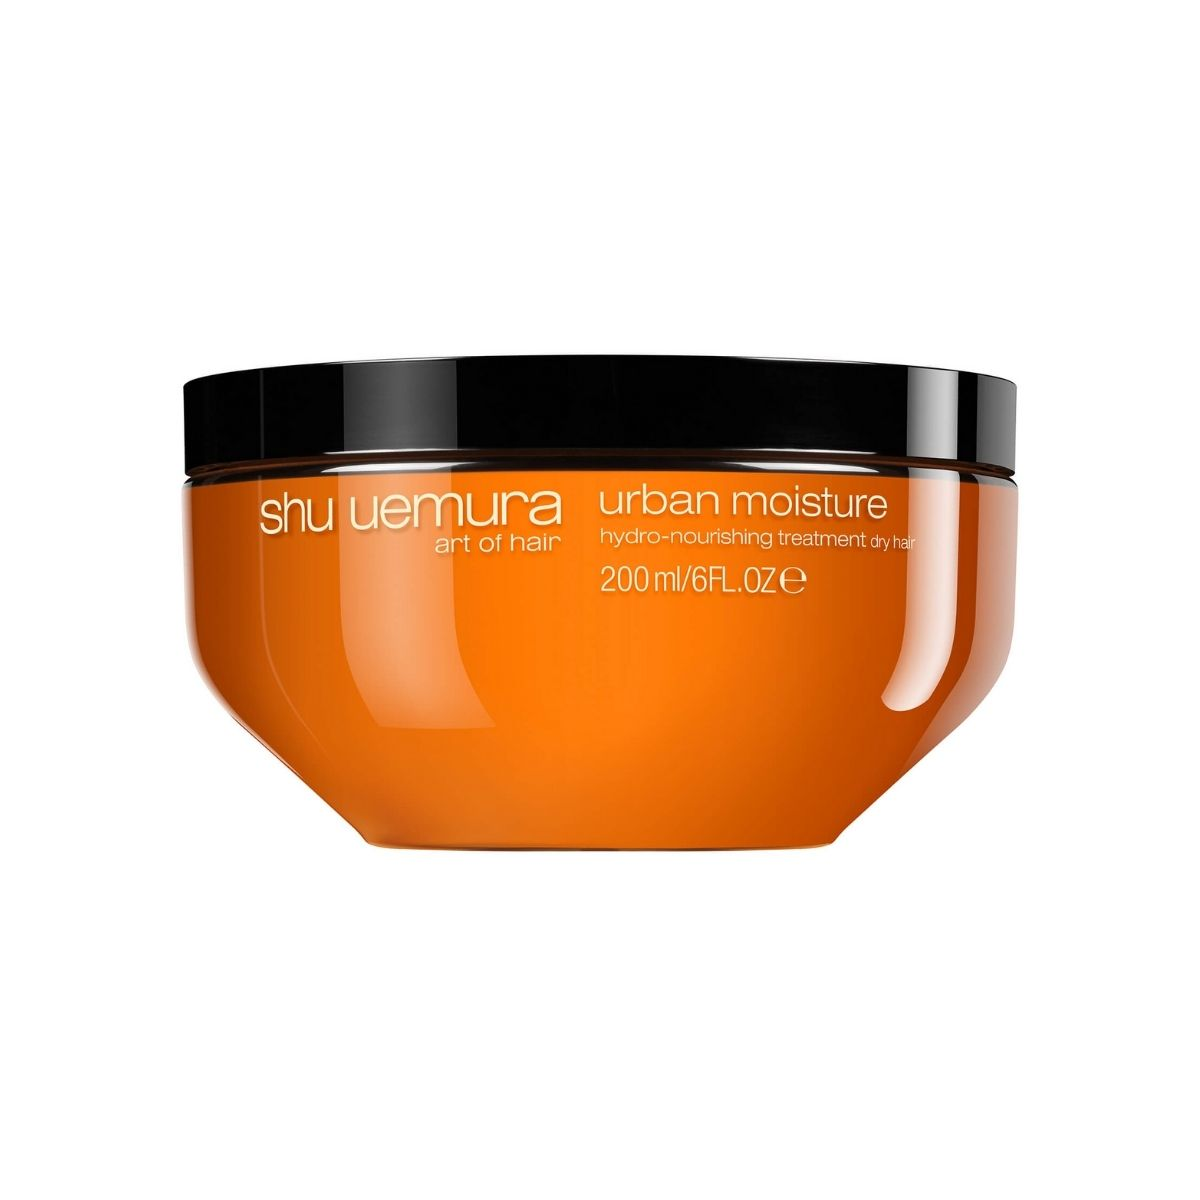 Shu Uemura Urban Moisture Hydro-Nourishing Masque Treatment